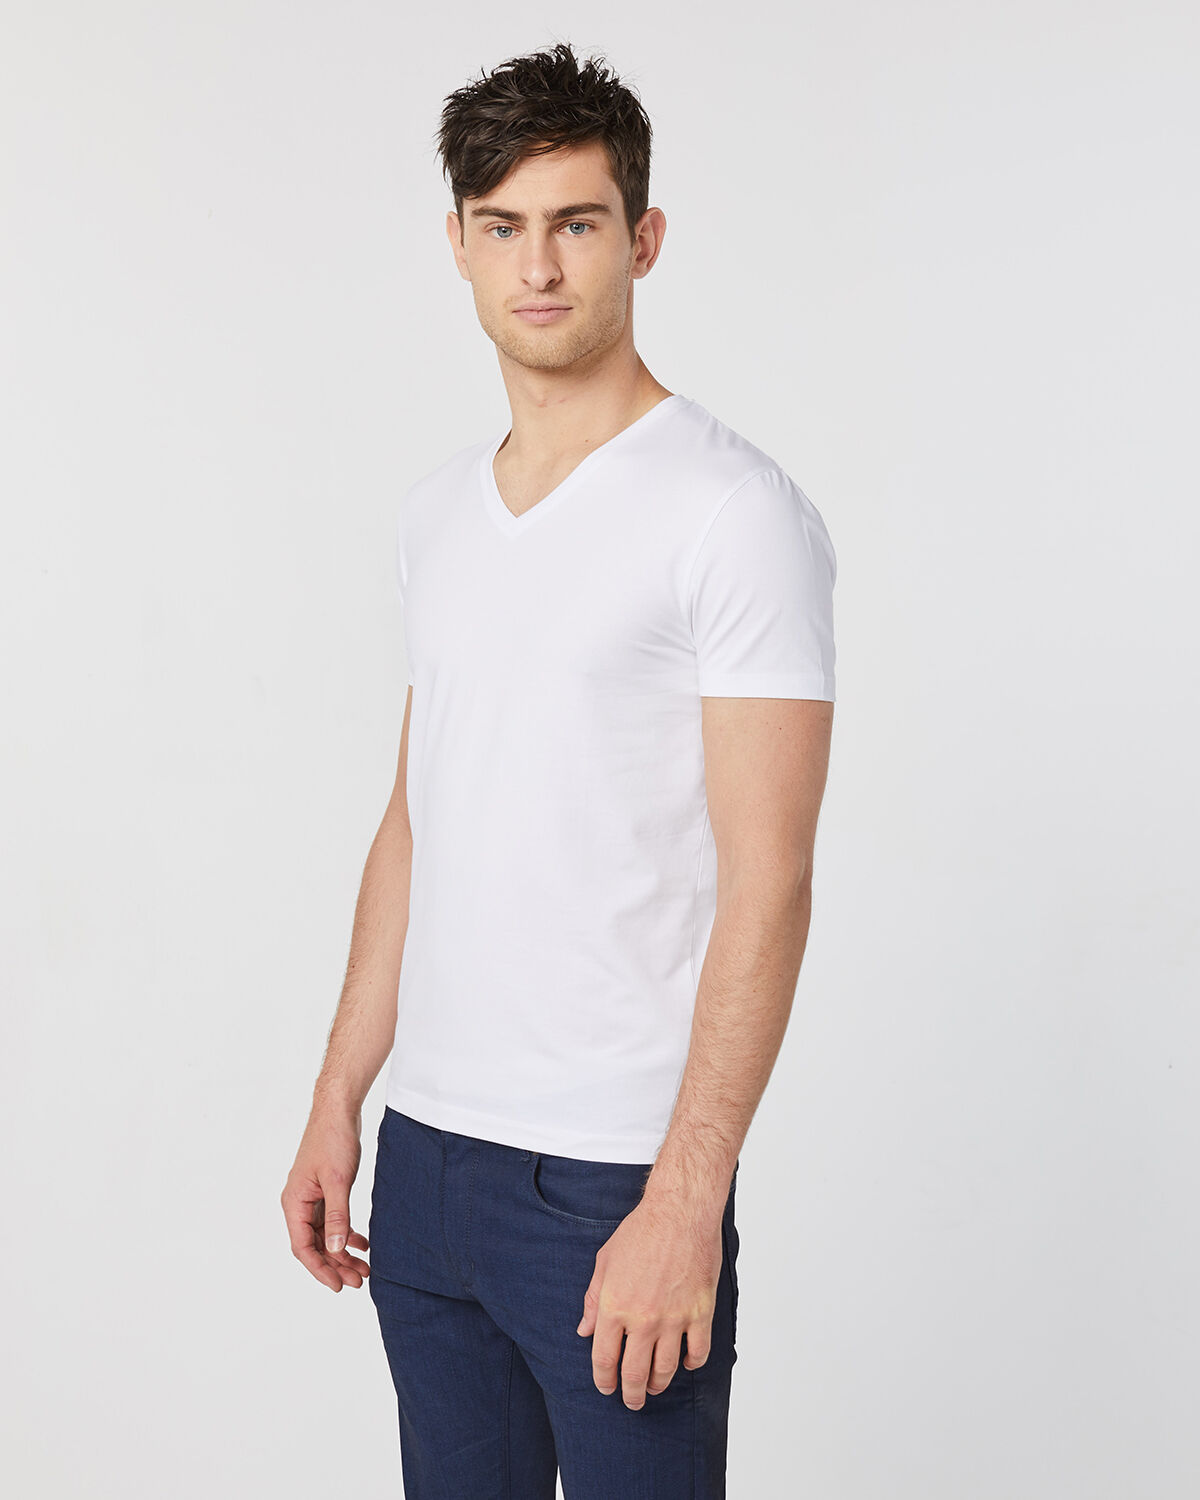 Basics We Herren Fashion We Herren Fashion Basics Basics Herren We vWqdnH